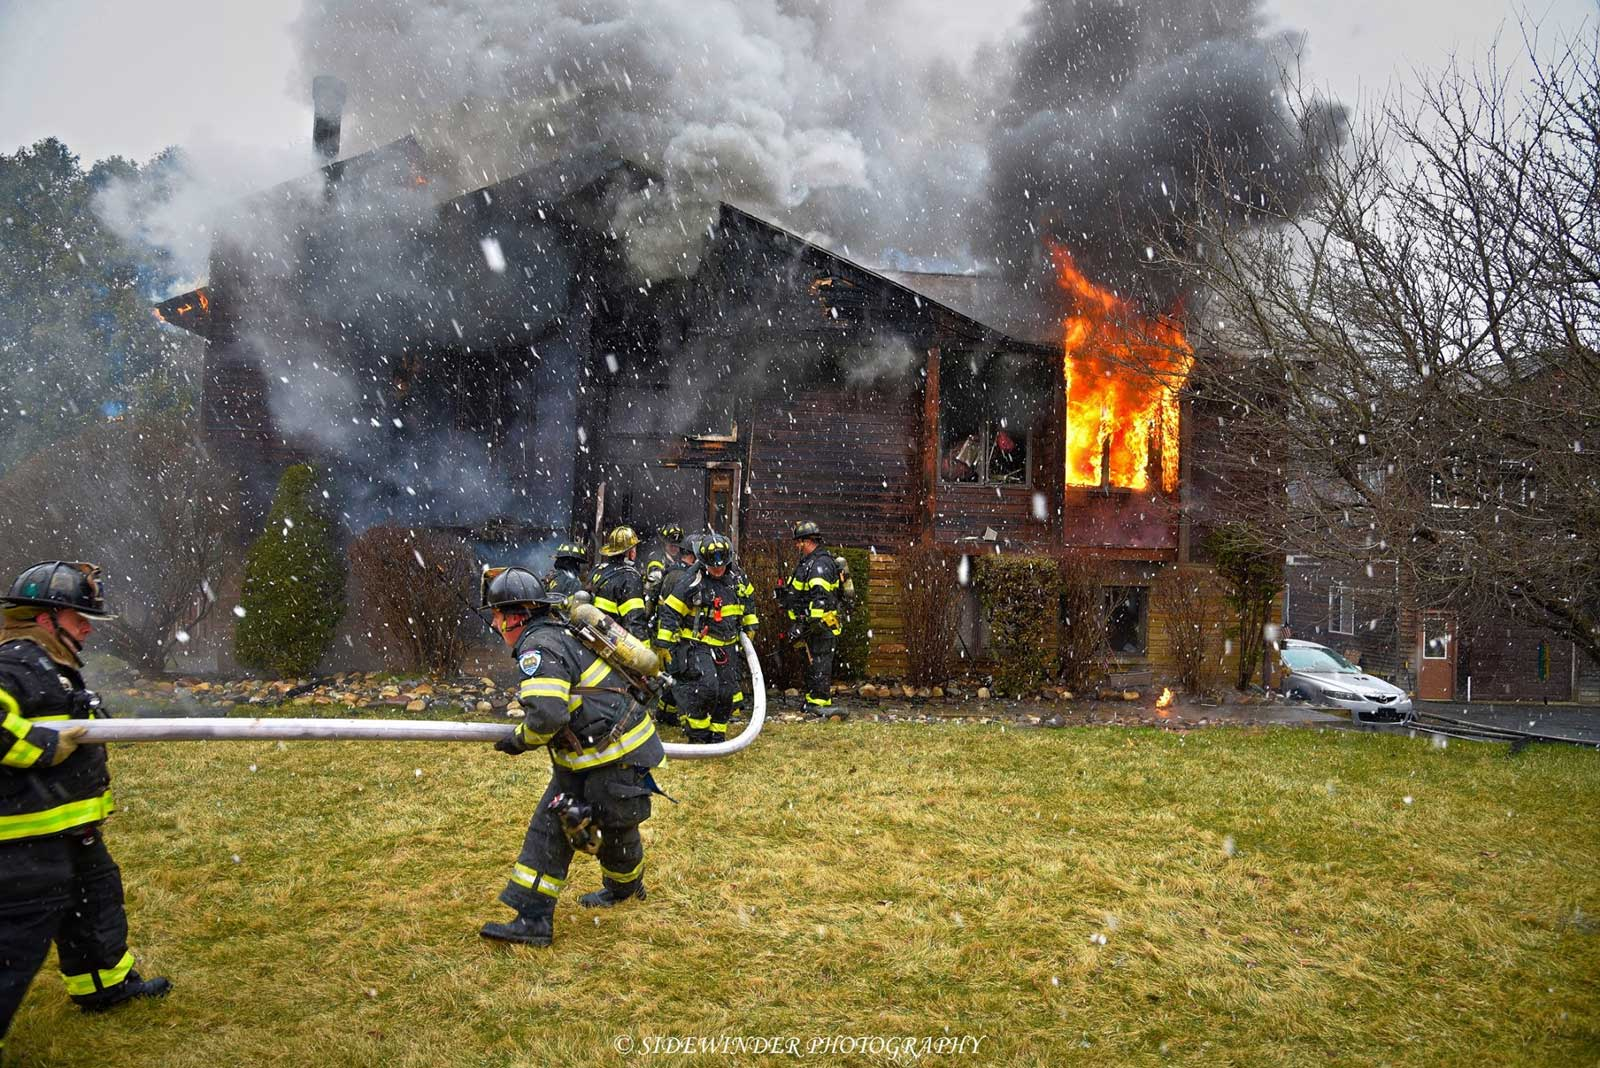 Firefighters control a house fire in Albany, New York